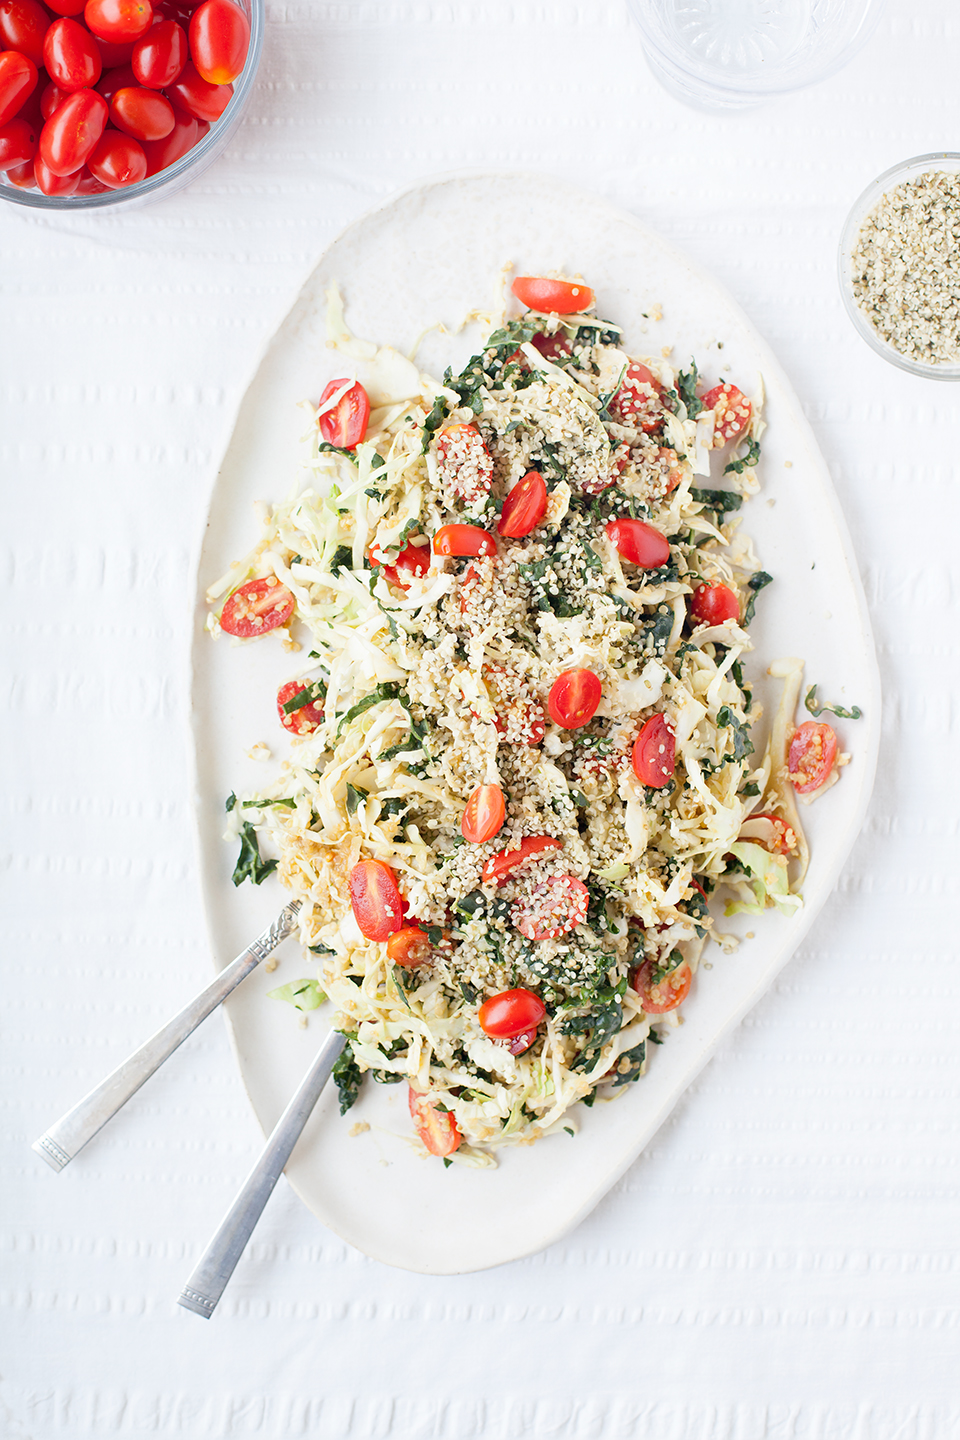 Kale + Cabbage Salad with Creamy Nutritional Yeast Dressing | Vegan, gluten-free, and paleo. | A healthy kale and cabbage salad with creamy nutritional yeast dressing topped with cherry tomatoes and hemp hearts. Vegan, gluten-free, and paleo. LOVELEAF CO. #healthy #salad #kale #slaw #coleslaw #nutritionalyeast #healthysaladdressing #dressing #dairyfree